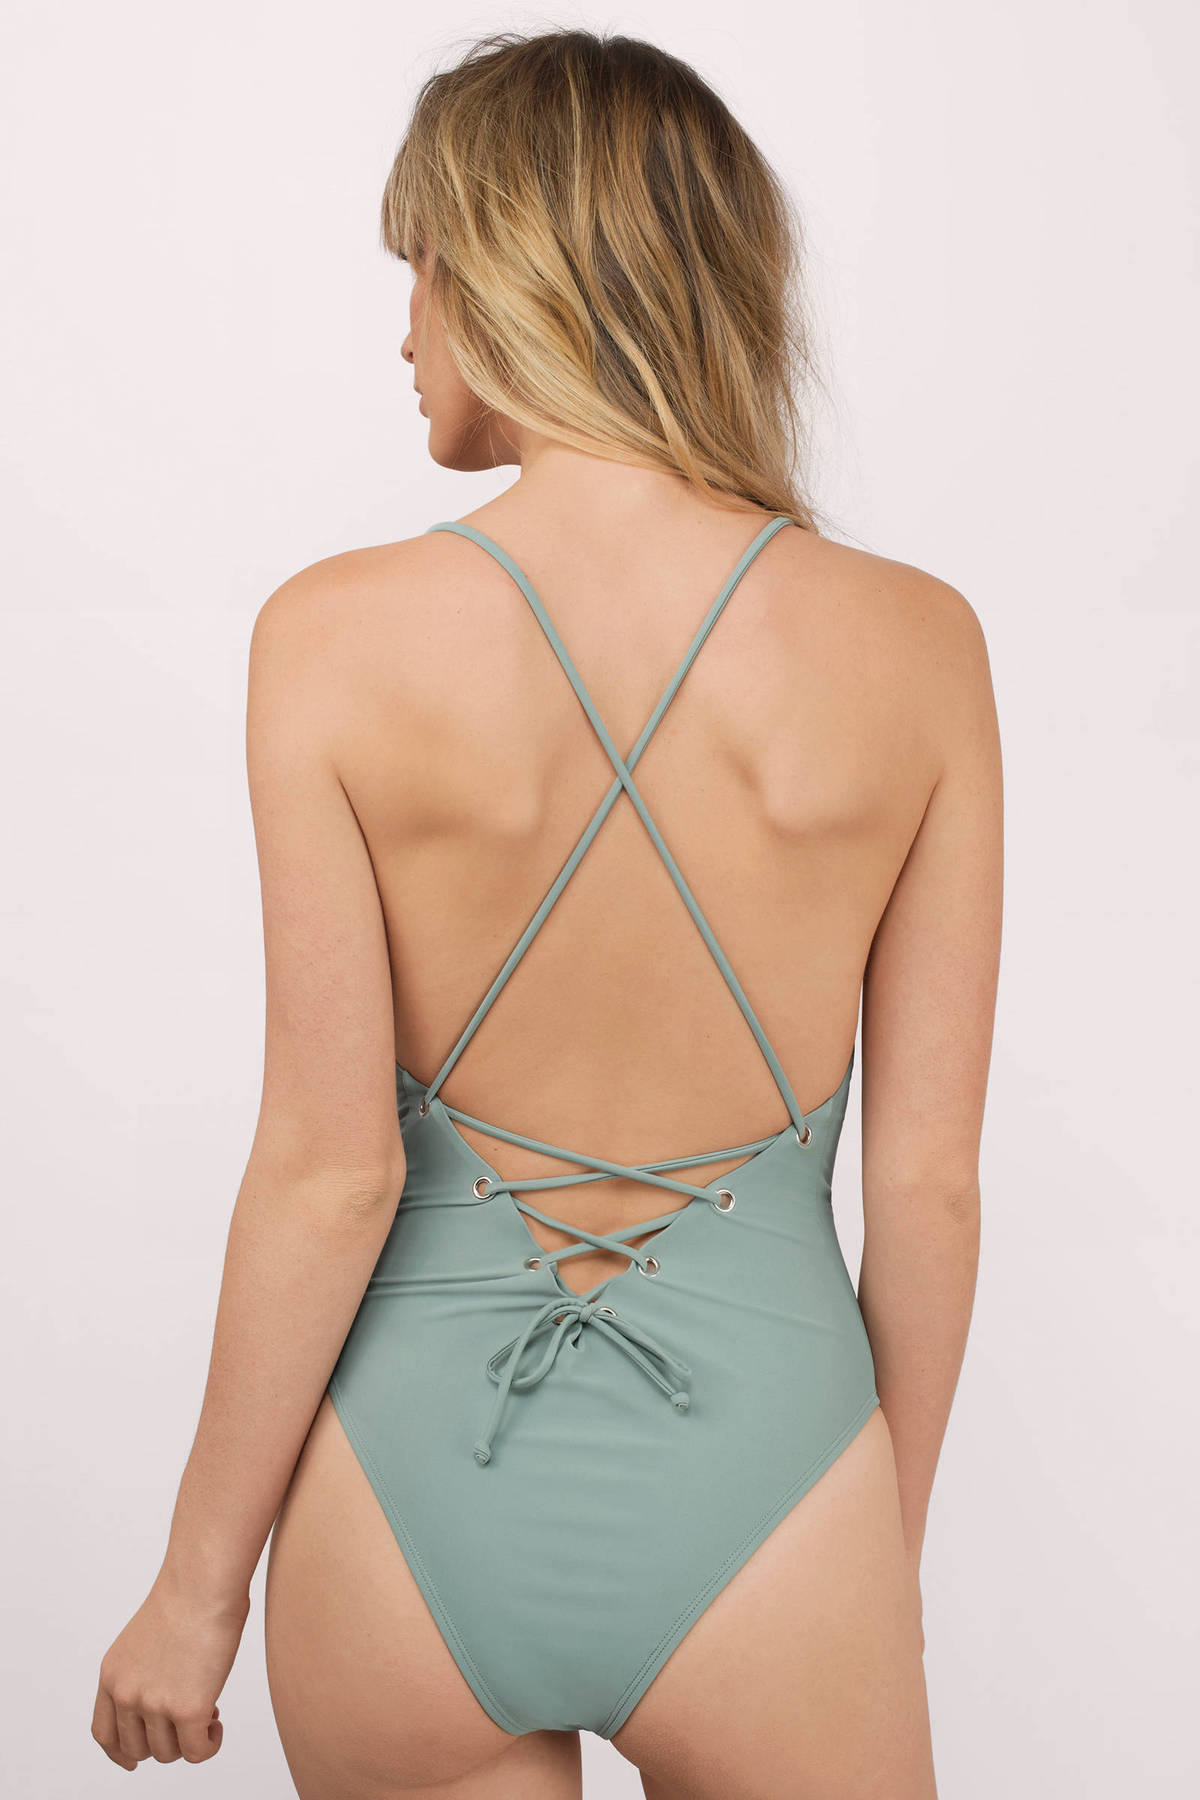 olive-better-off-lace-up-monokini@2x